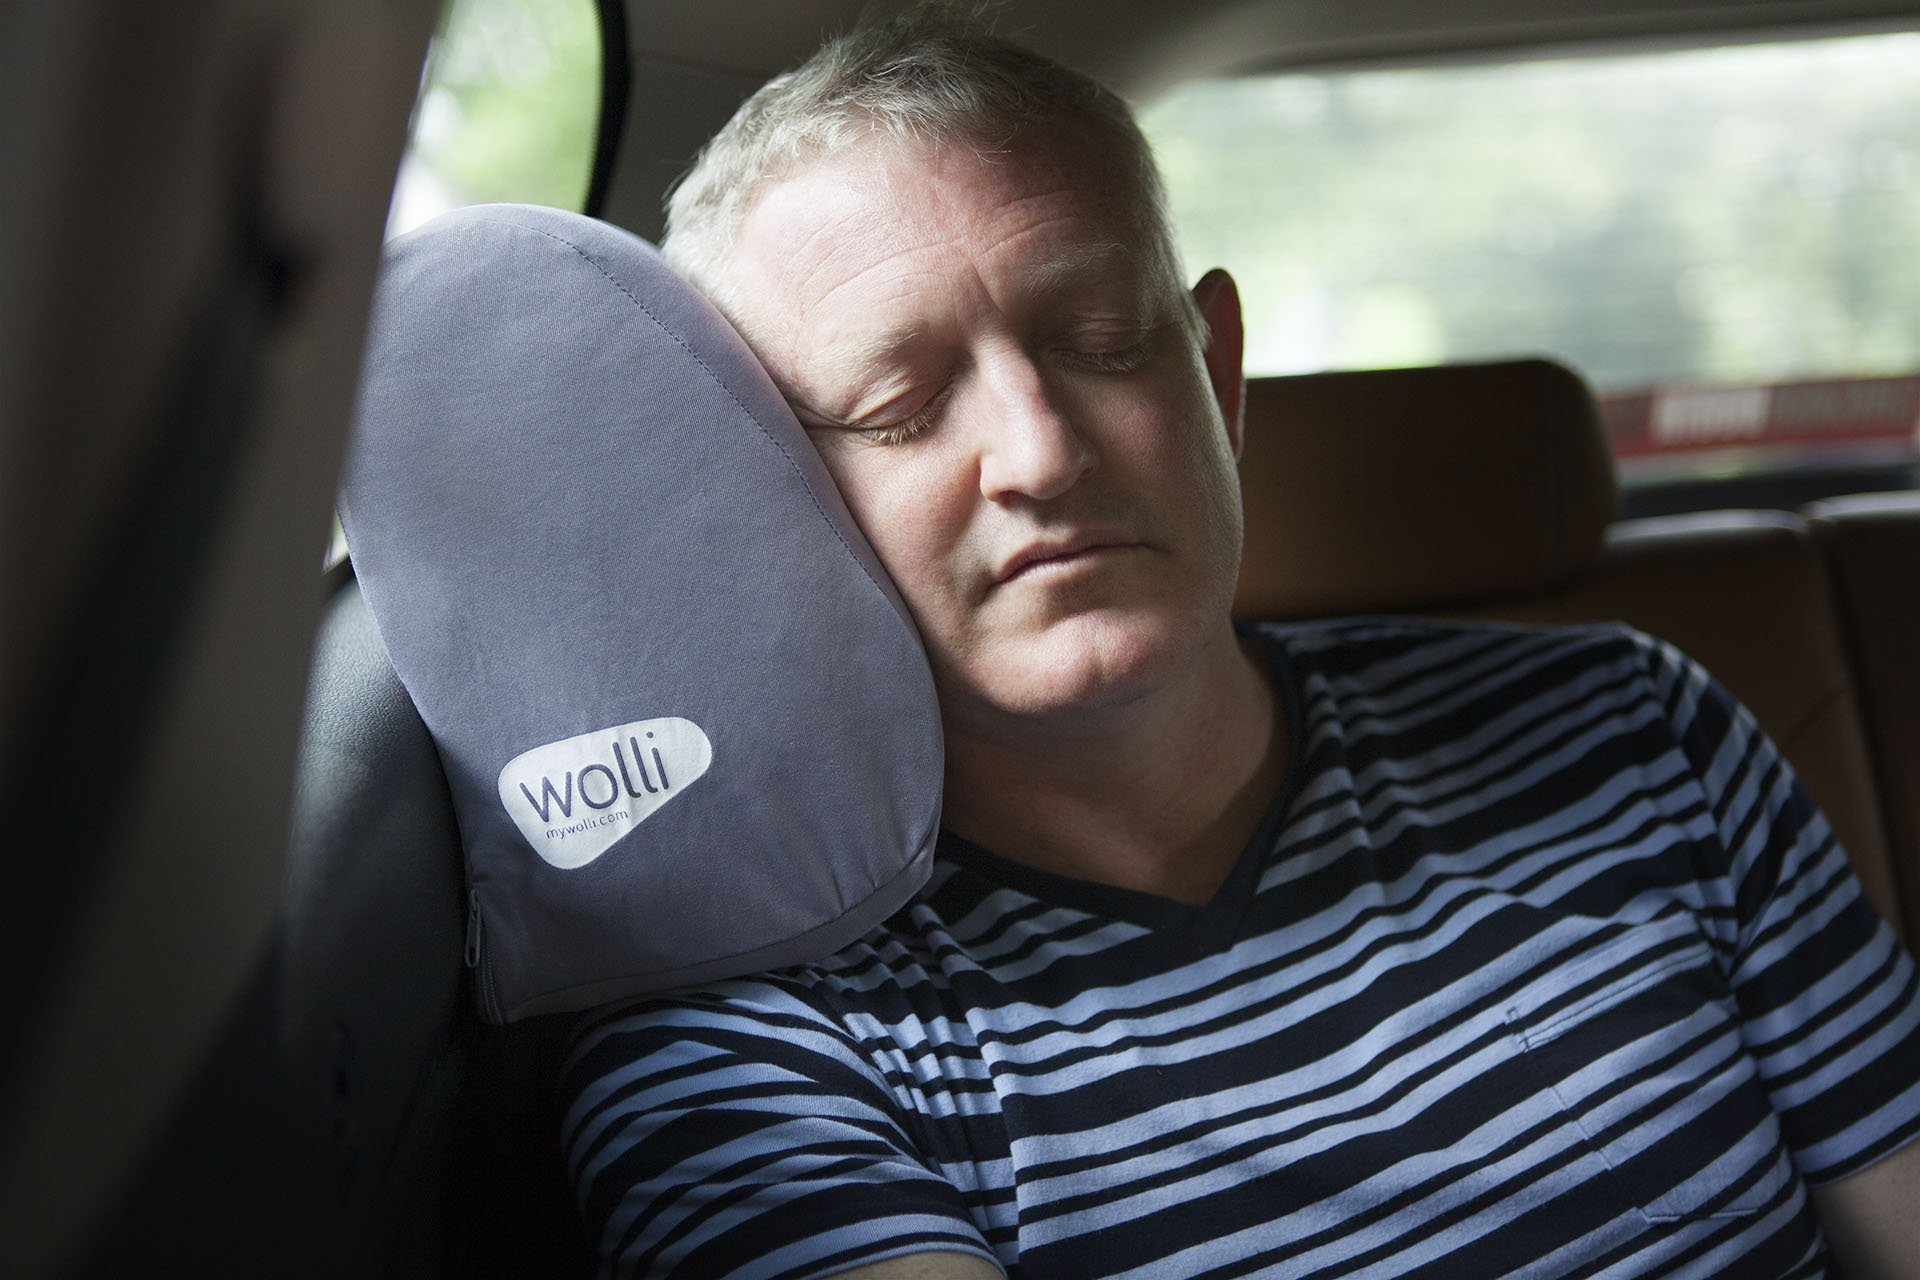 Wolli- The Window Seat Headrest Pillow - Perfect for Car, Train, and Airplane Travel (Gray)